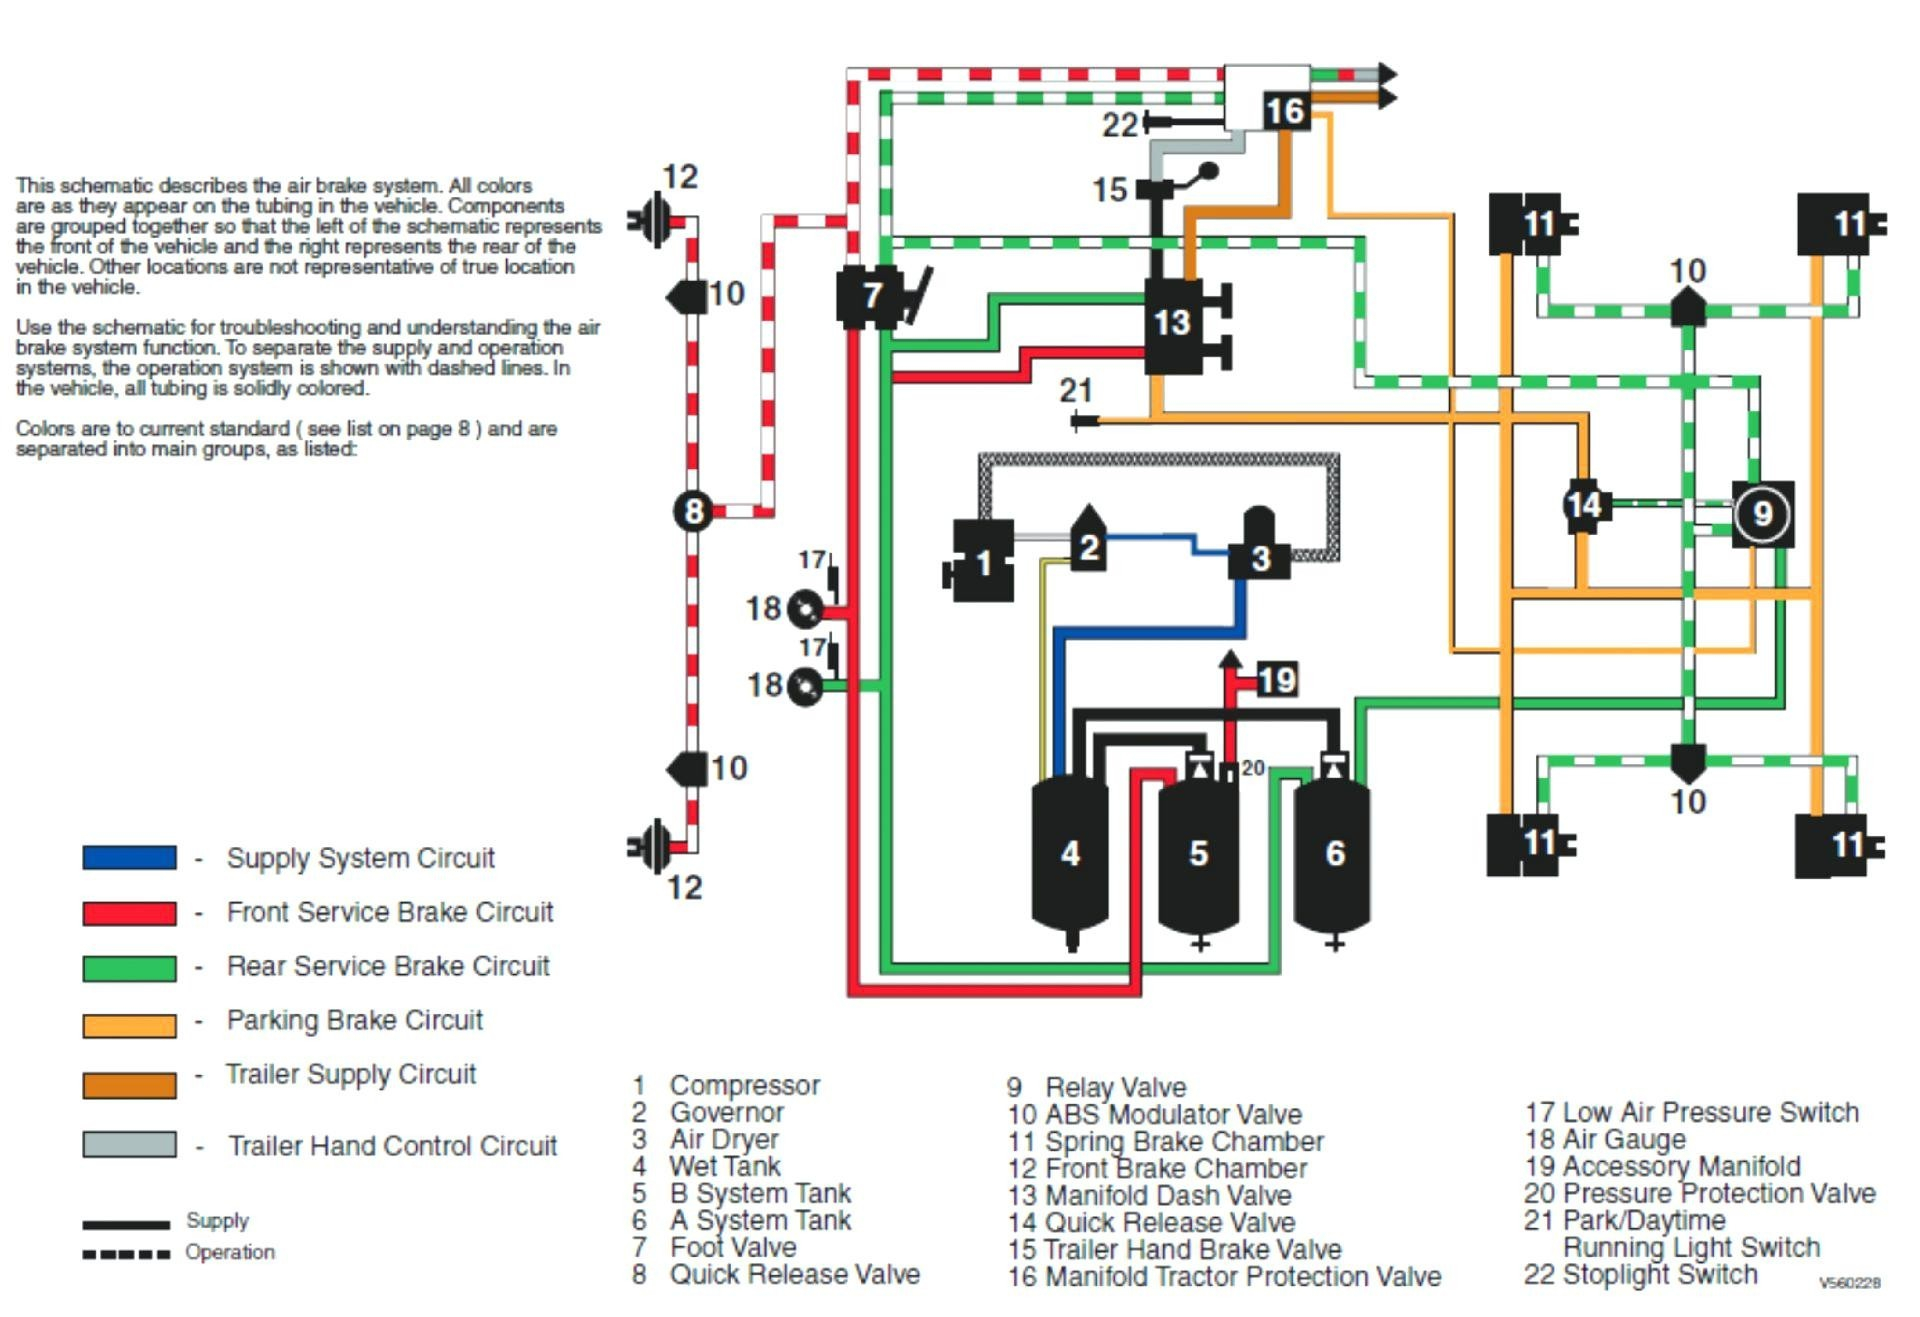 voyager trailer brake controller wiring diagram mixture of elements and compounds 2 axle gallery